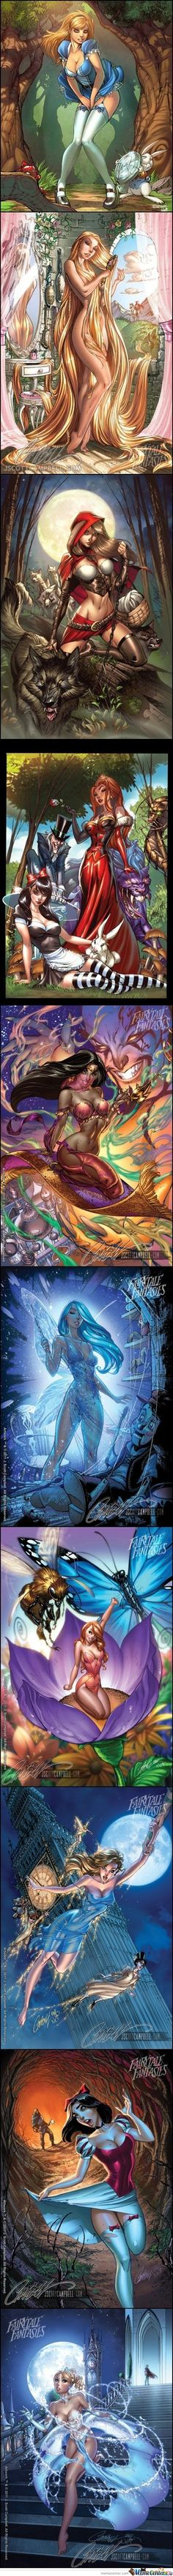 Disney fairy tales by J Scott Campbell, Grim Fairytales Series